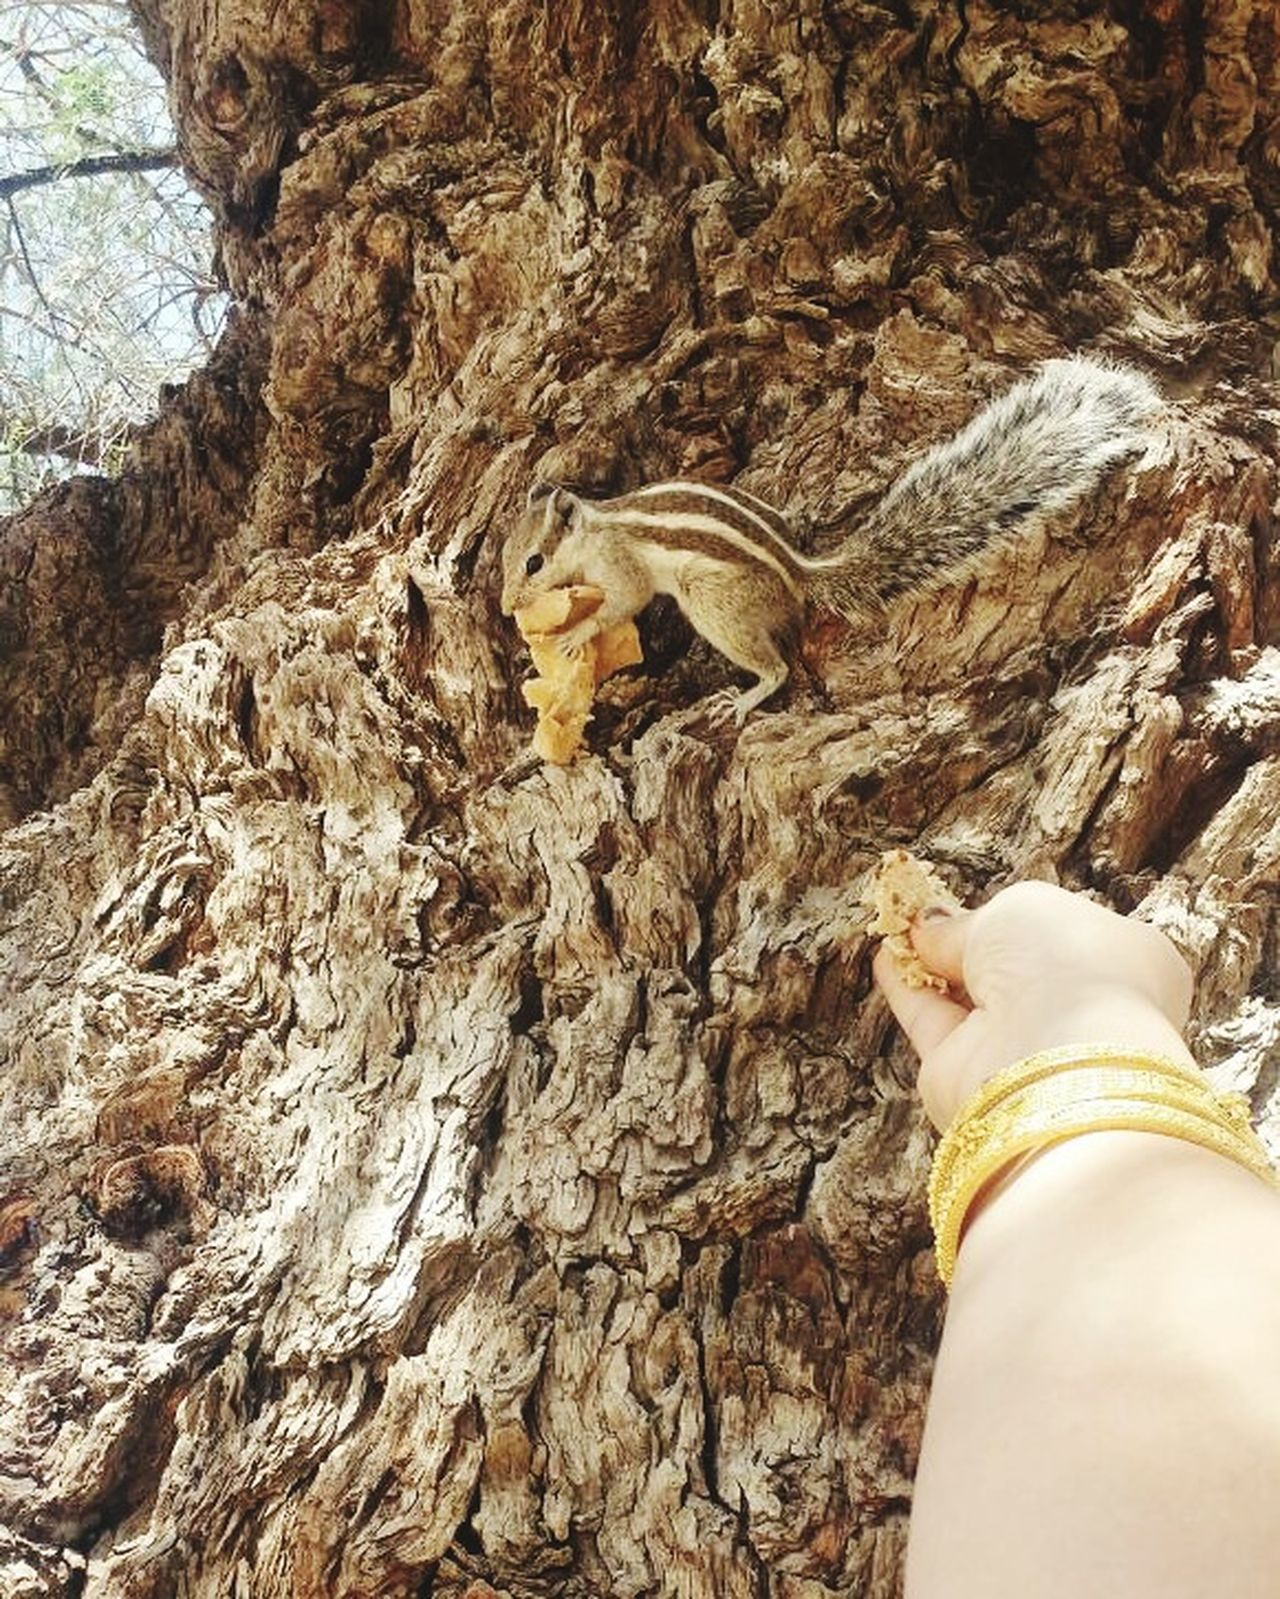 Feeding Animals Squirrel Old Tree my Hand Check This Out Animal Love ♥ Relationship Long Time Ago i used to feed squirrel everytime i be to my nani's house. She pefectly knows the sound of my wistle ..runs to me ❤ In Love With It ❤ Enjoying Life